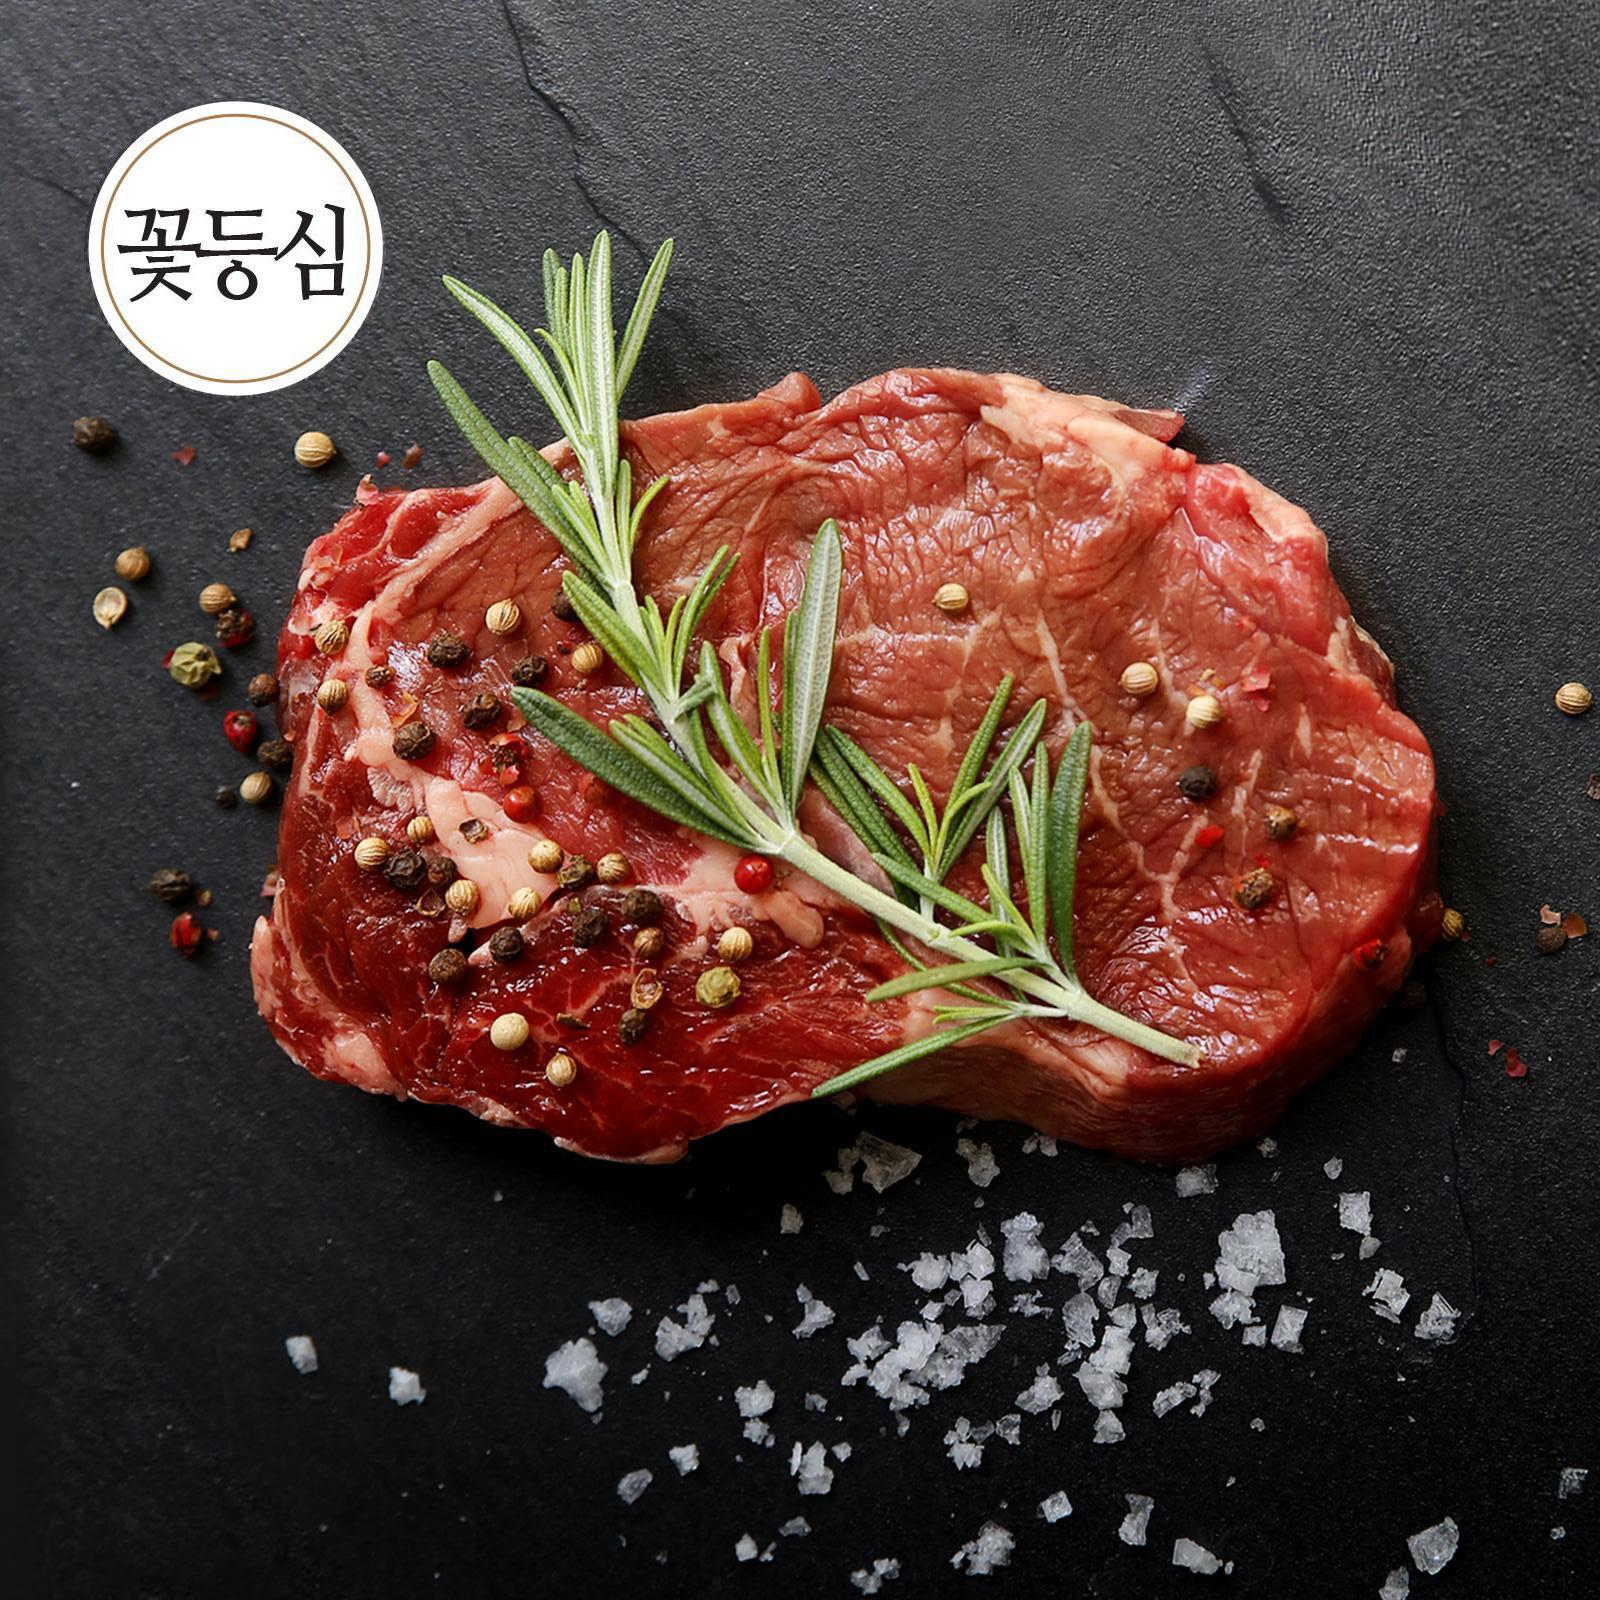 The Butcher's Dining Grass Fed Prime Ribeye Beef - New Zealand